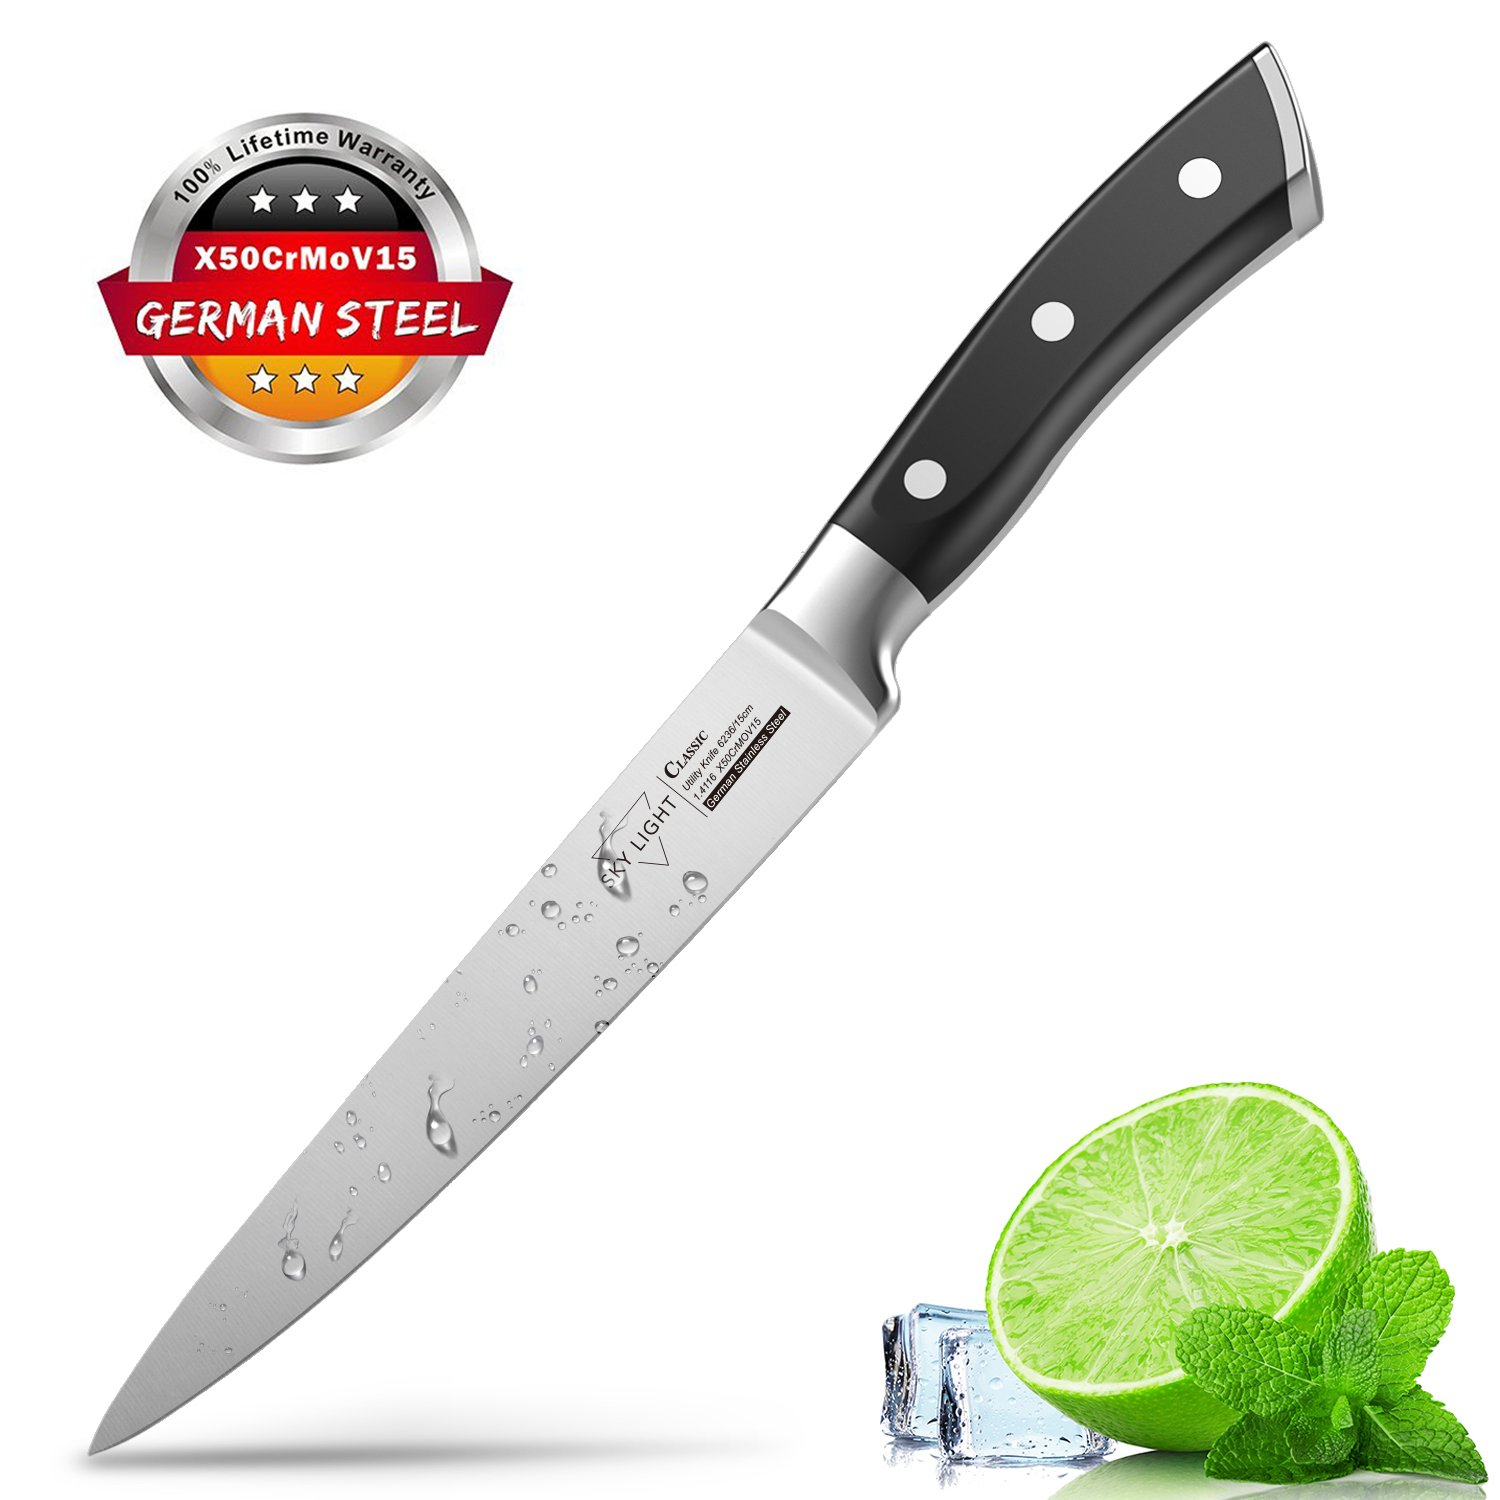 Chef Knife Kitchen Utility Knife 6 inch Vegetable Knife High Carbon Stainless Steel Forged Blade Ergonomic Handle Non Slip Cutlery